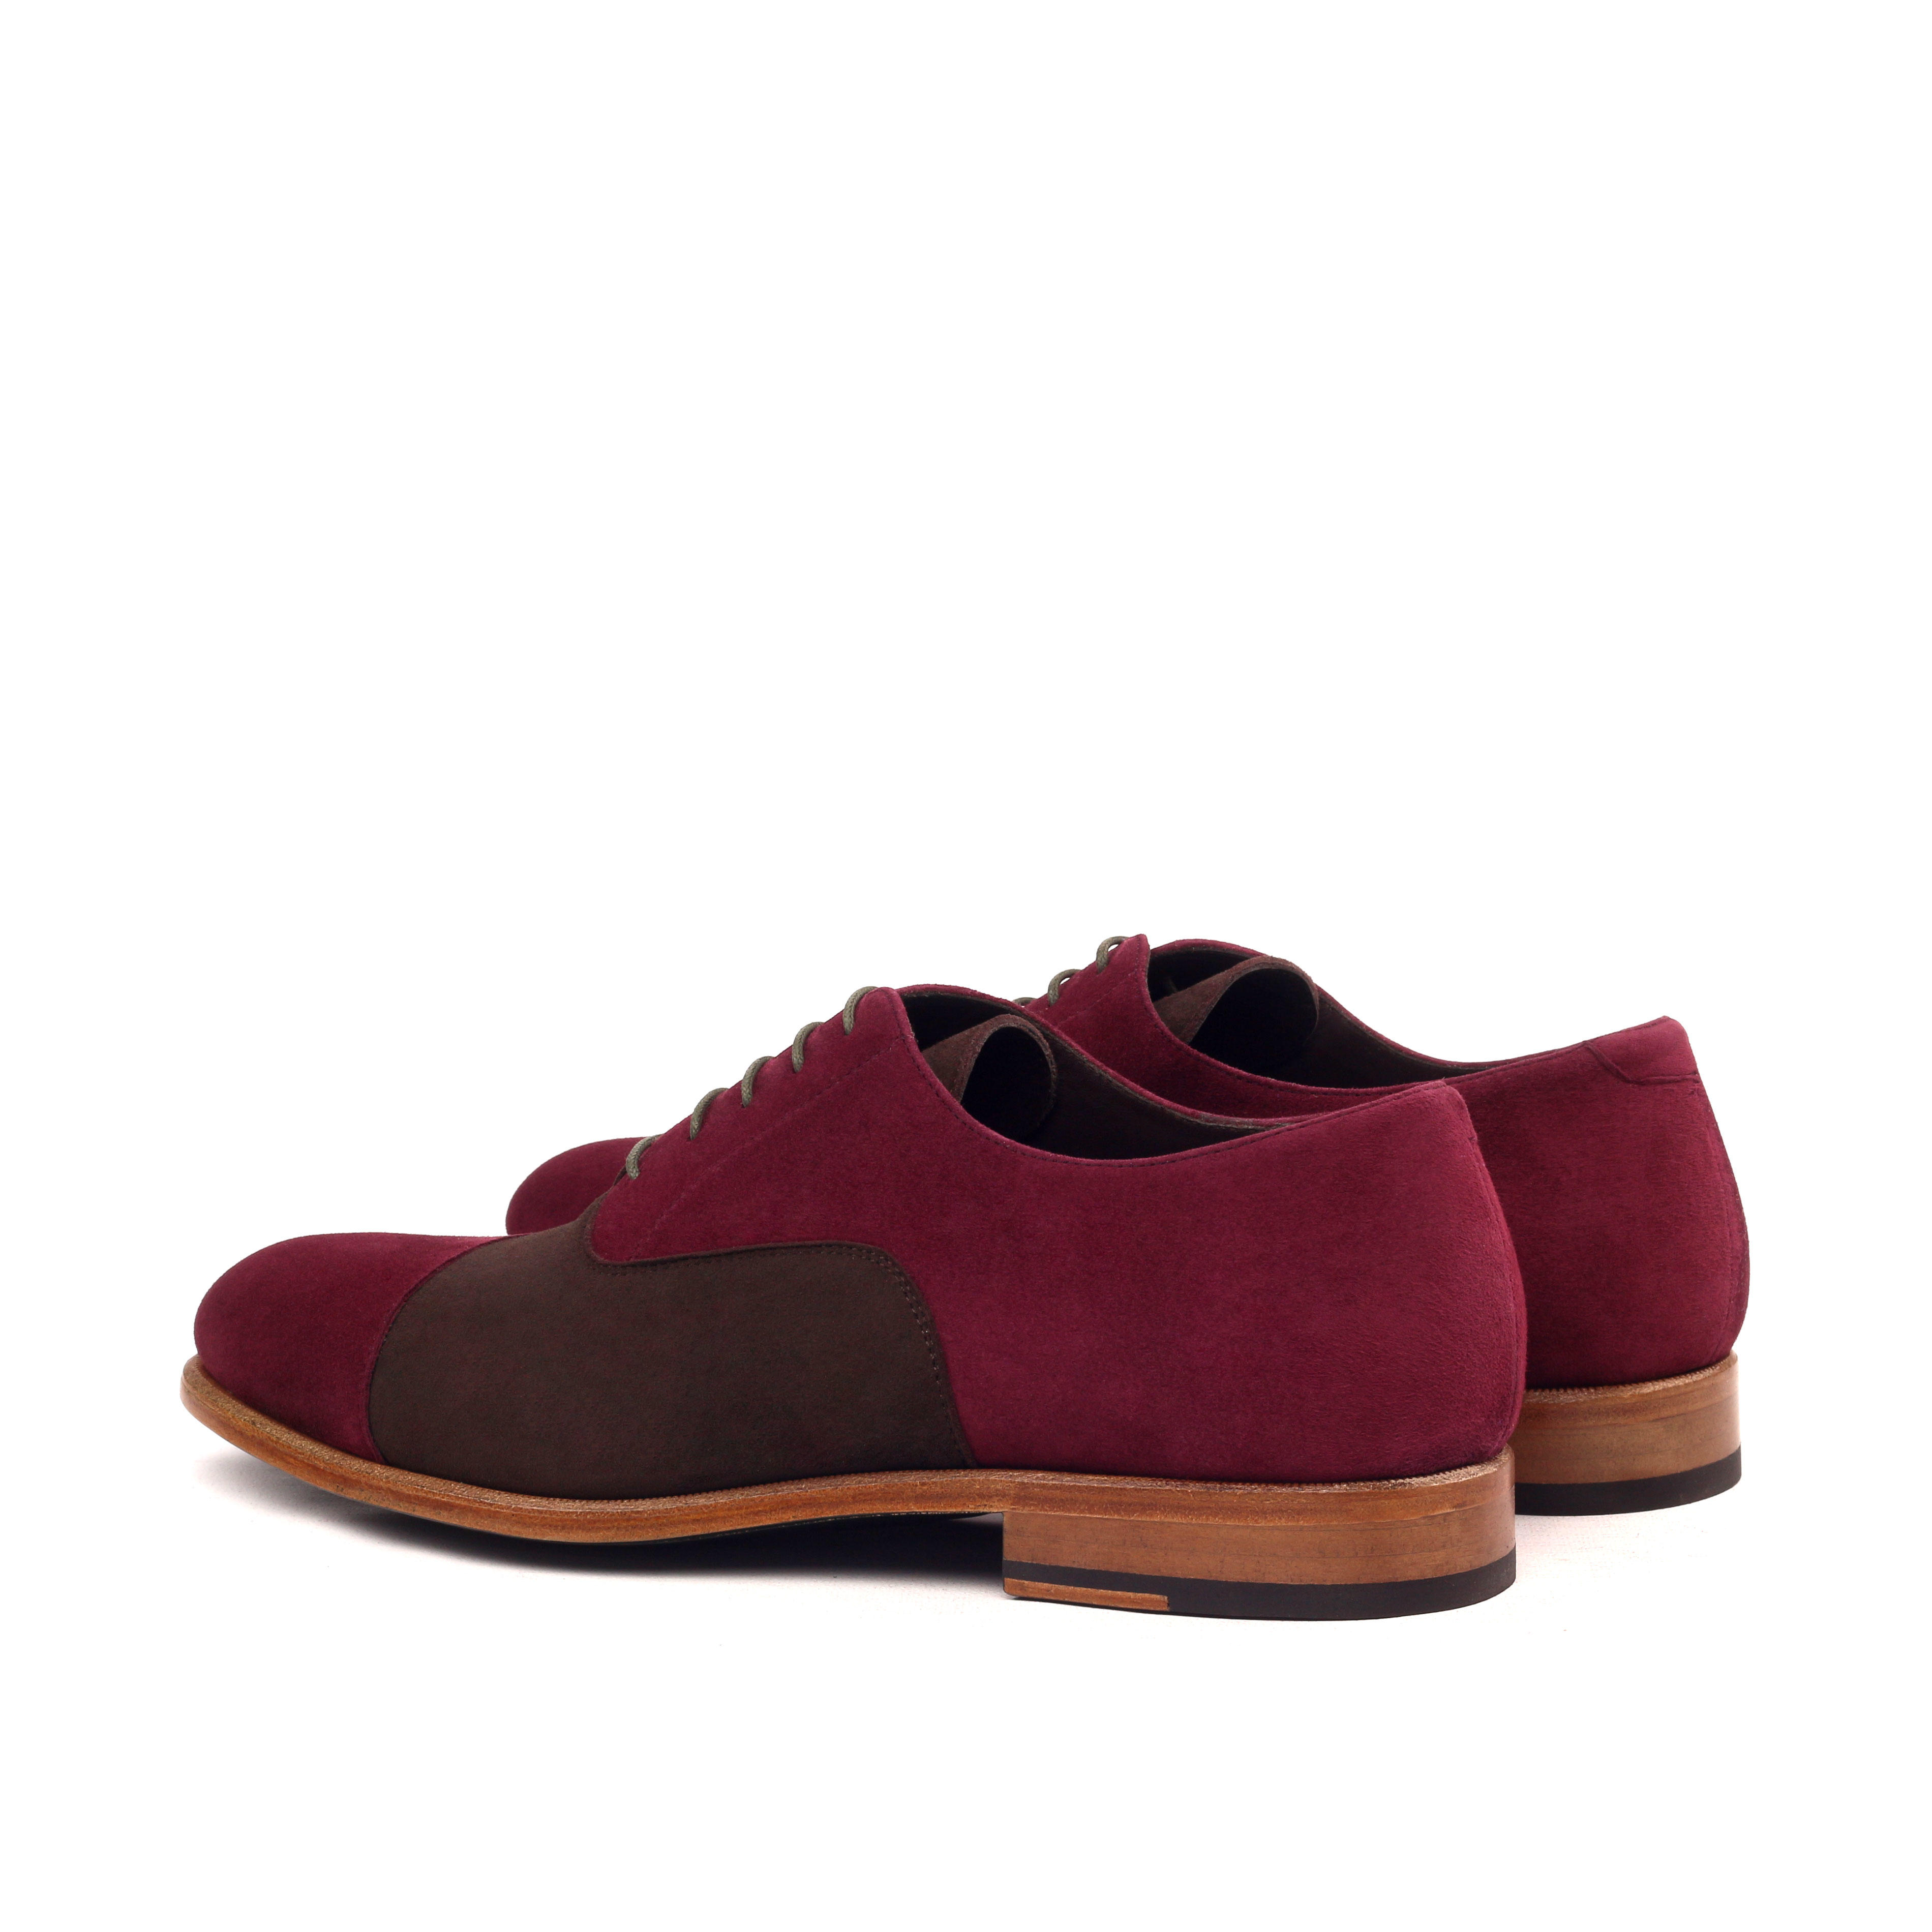 MANOR OF LONDON 'The Oxford' Brown & Wine Suede Shoe Luxury Custom Initials Monogrammed Back Side View